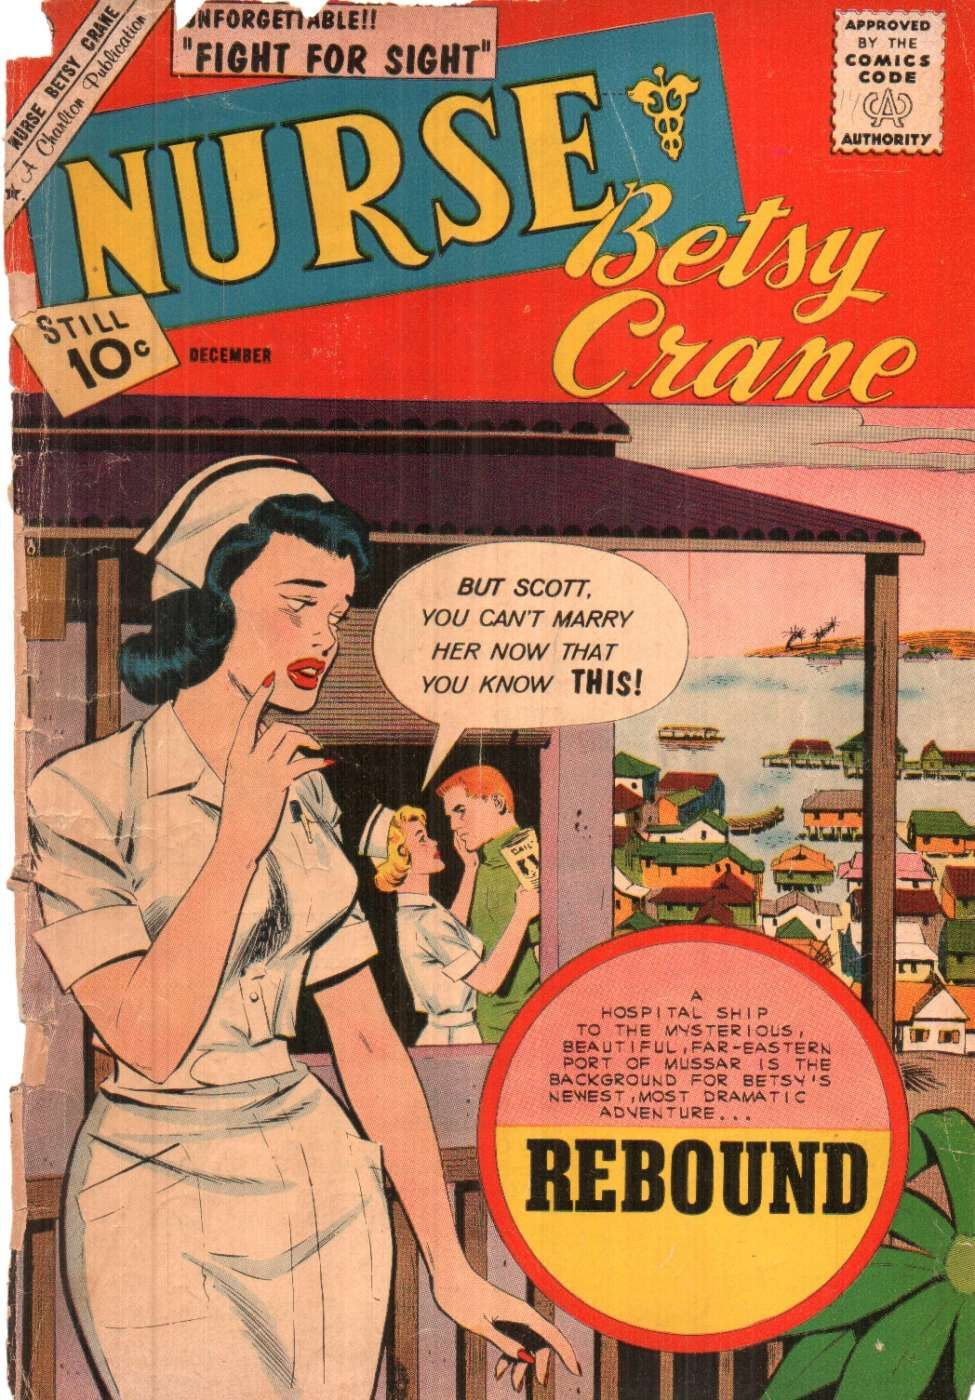 Nurses By The Book Nurse Betsy Crane Rebound Comic Charlton